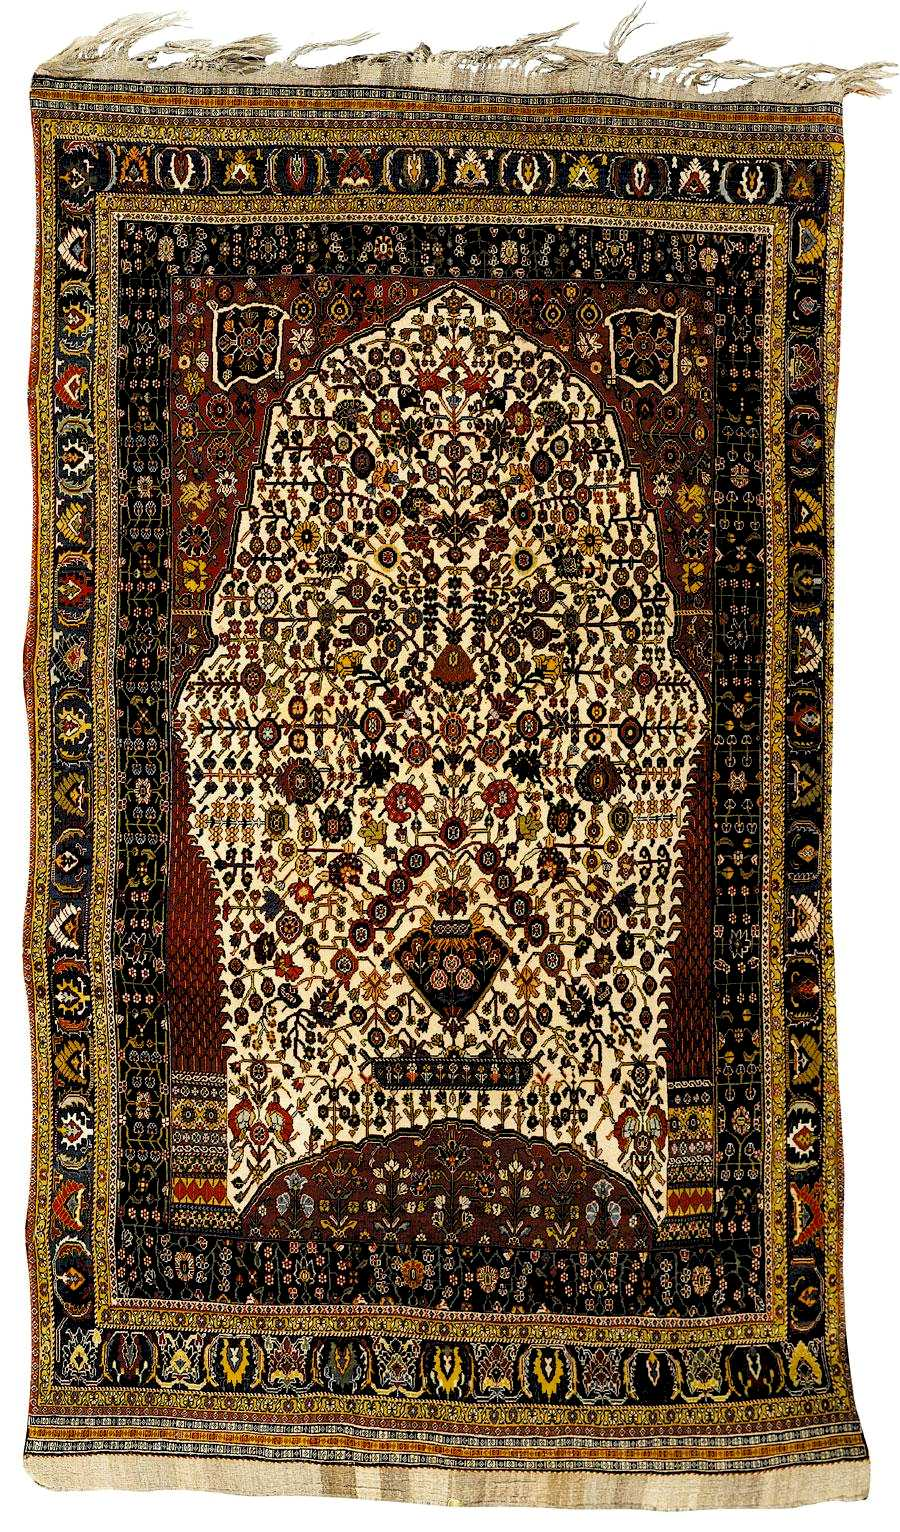 Qashqai Millefluers Prayer Rug early 20th c.